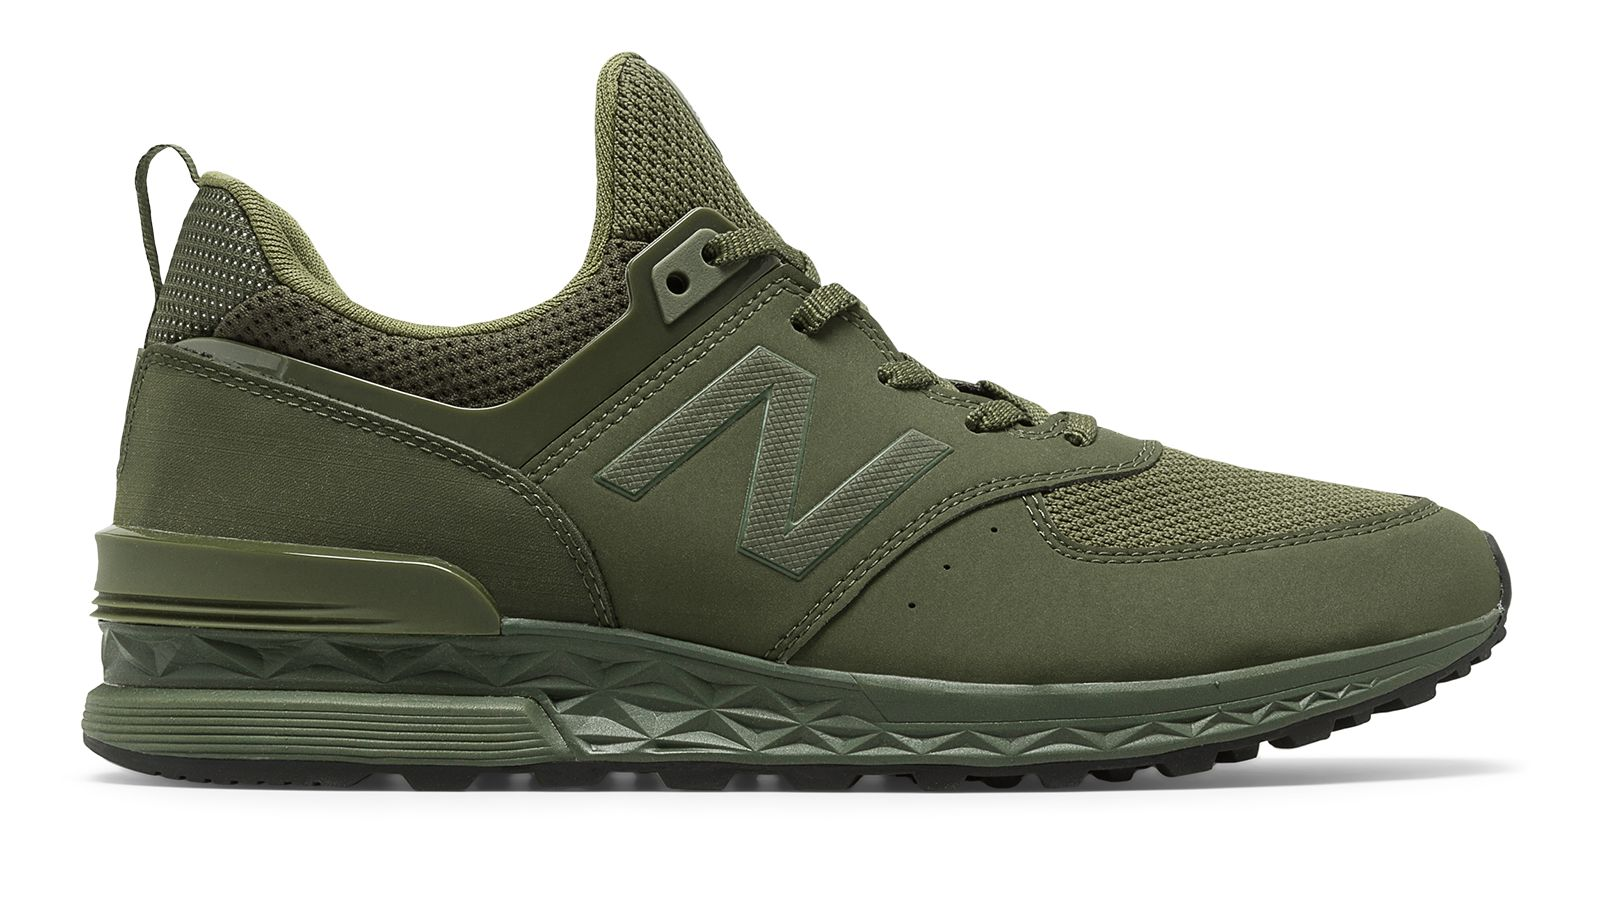 sports shoes 72fa4 82655 Details about New Balance Men's 574 Sport Shoes Green